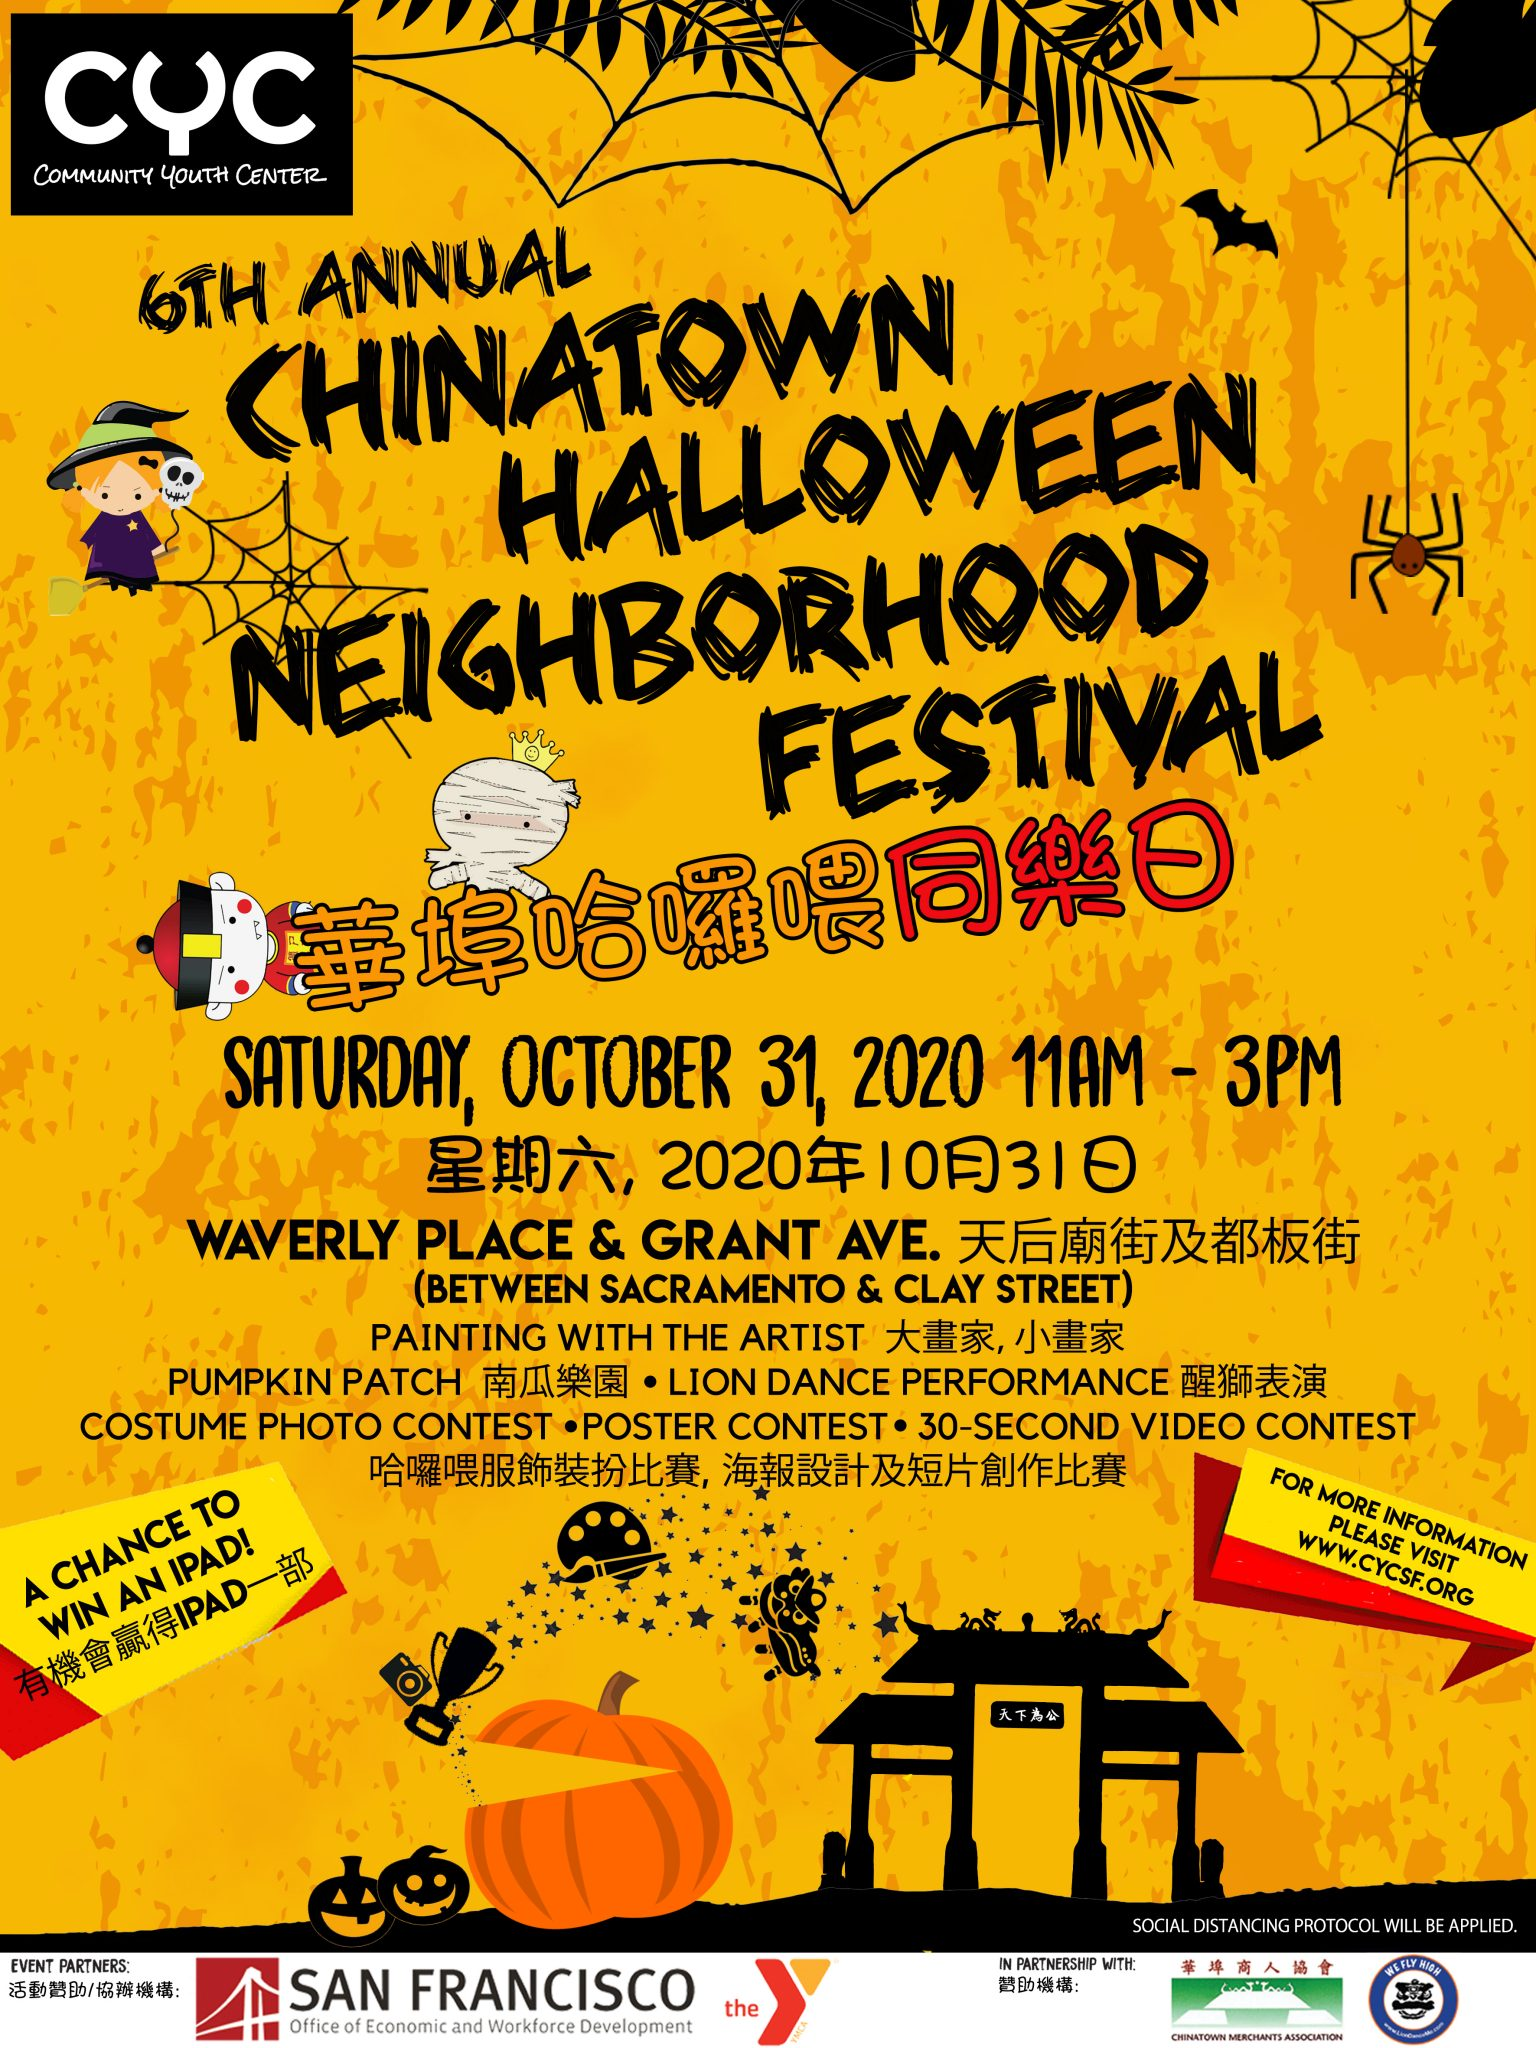 Chinatown Events Halloween 2020 Join Us This Halloween on Saturday, October 31 in Chinatown